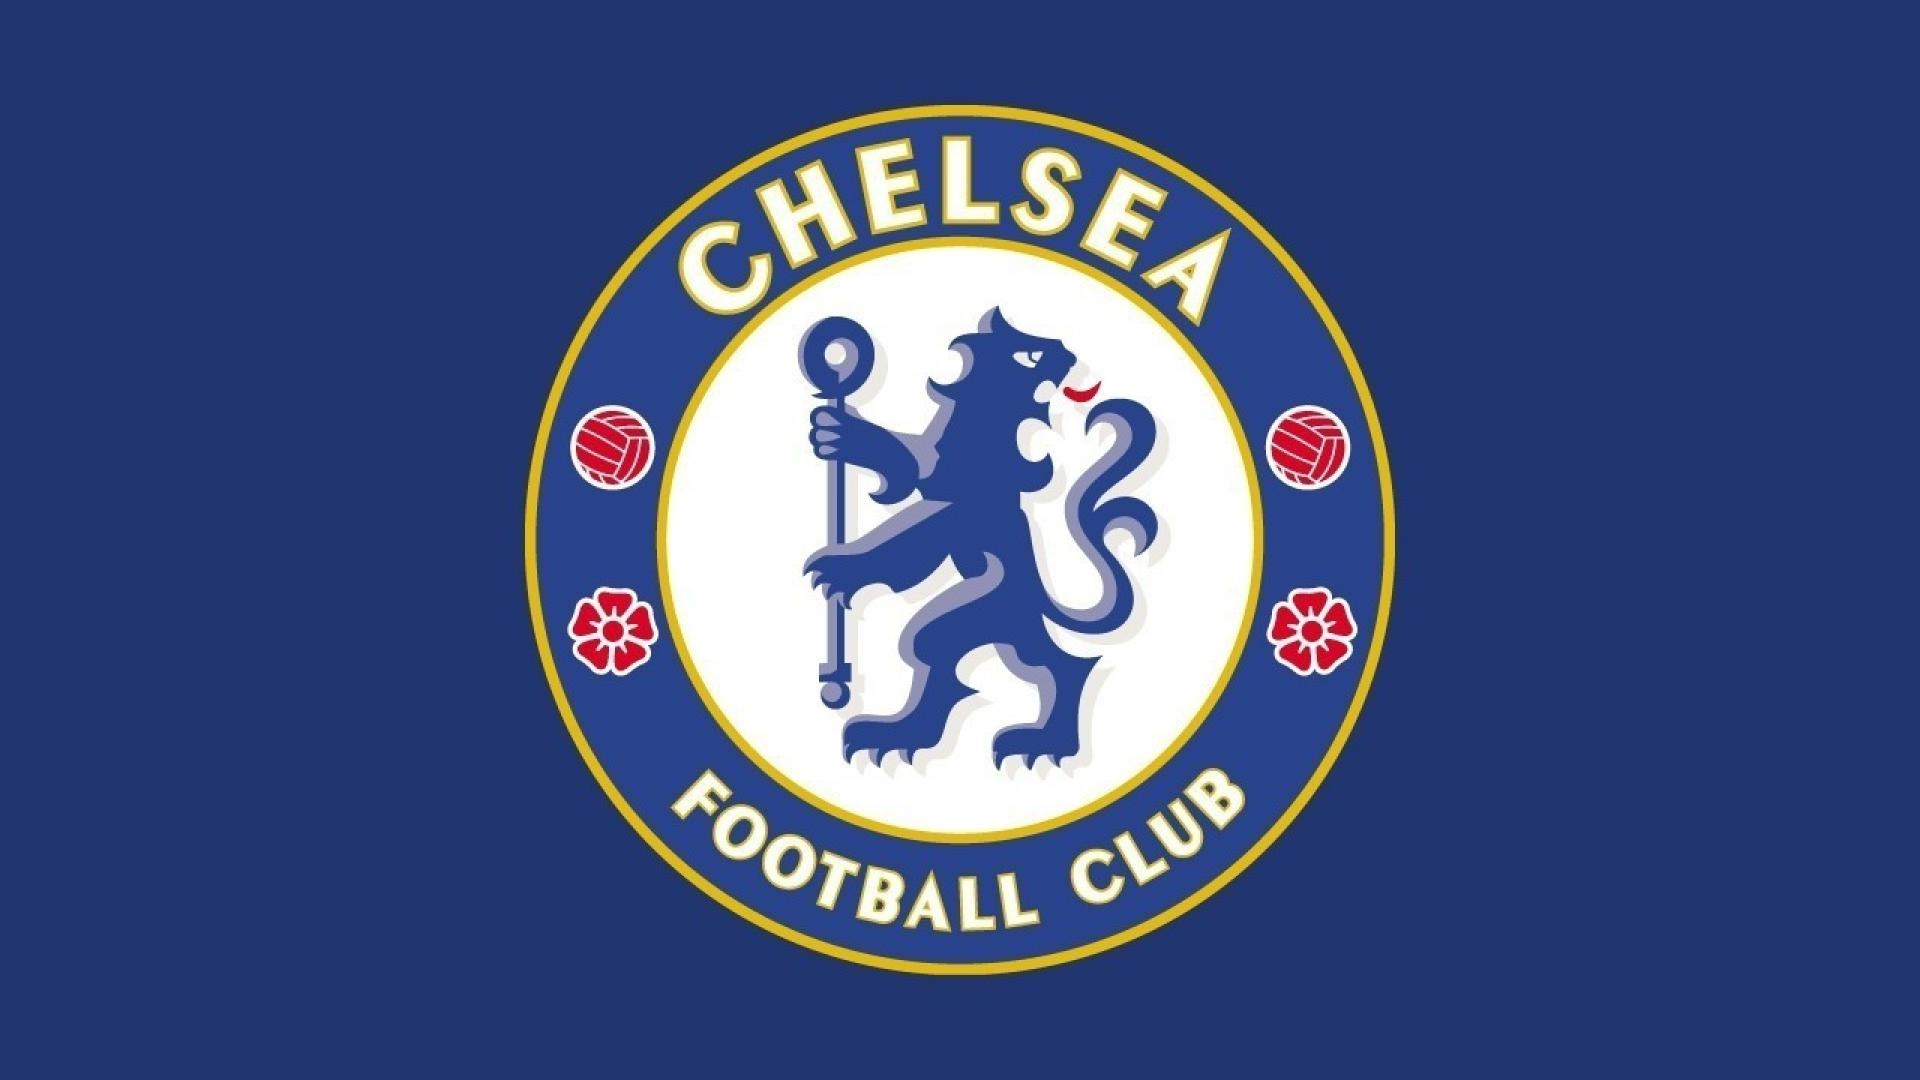 Chelsea football club logo 1920 x 1080 download close